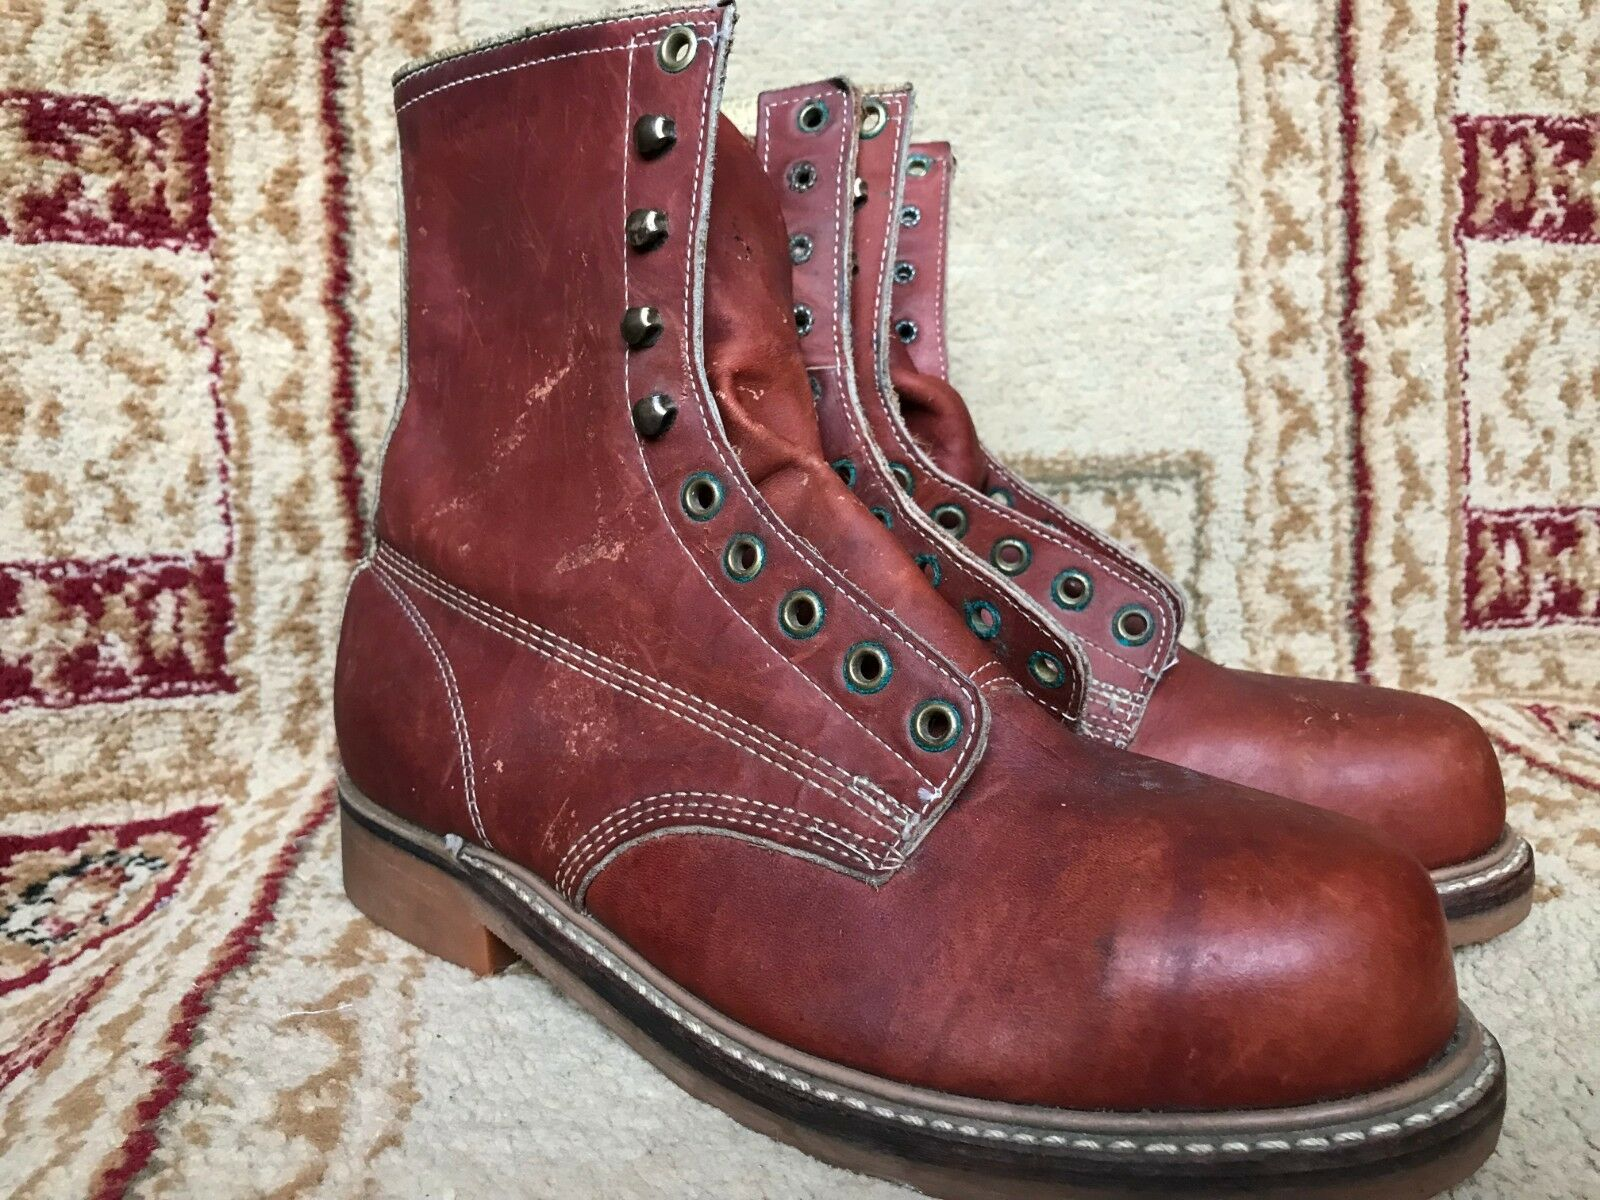 Vintage IRON Toe AGE Braun Leder Steel Toe IRON Work Stiefel  Uomo Größe 7.5 E Made in USA a127ca